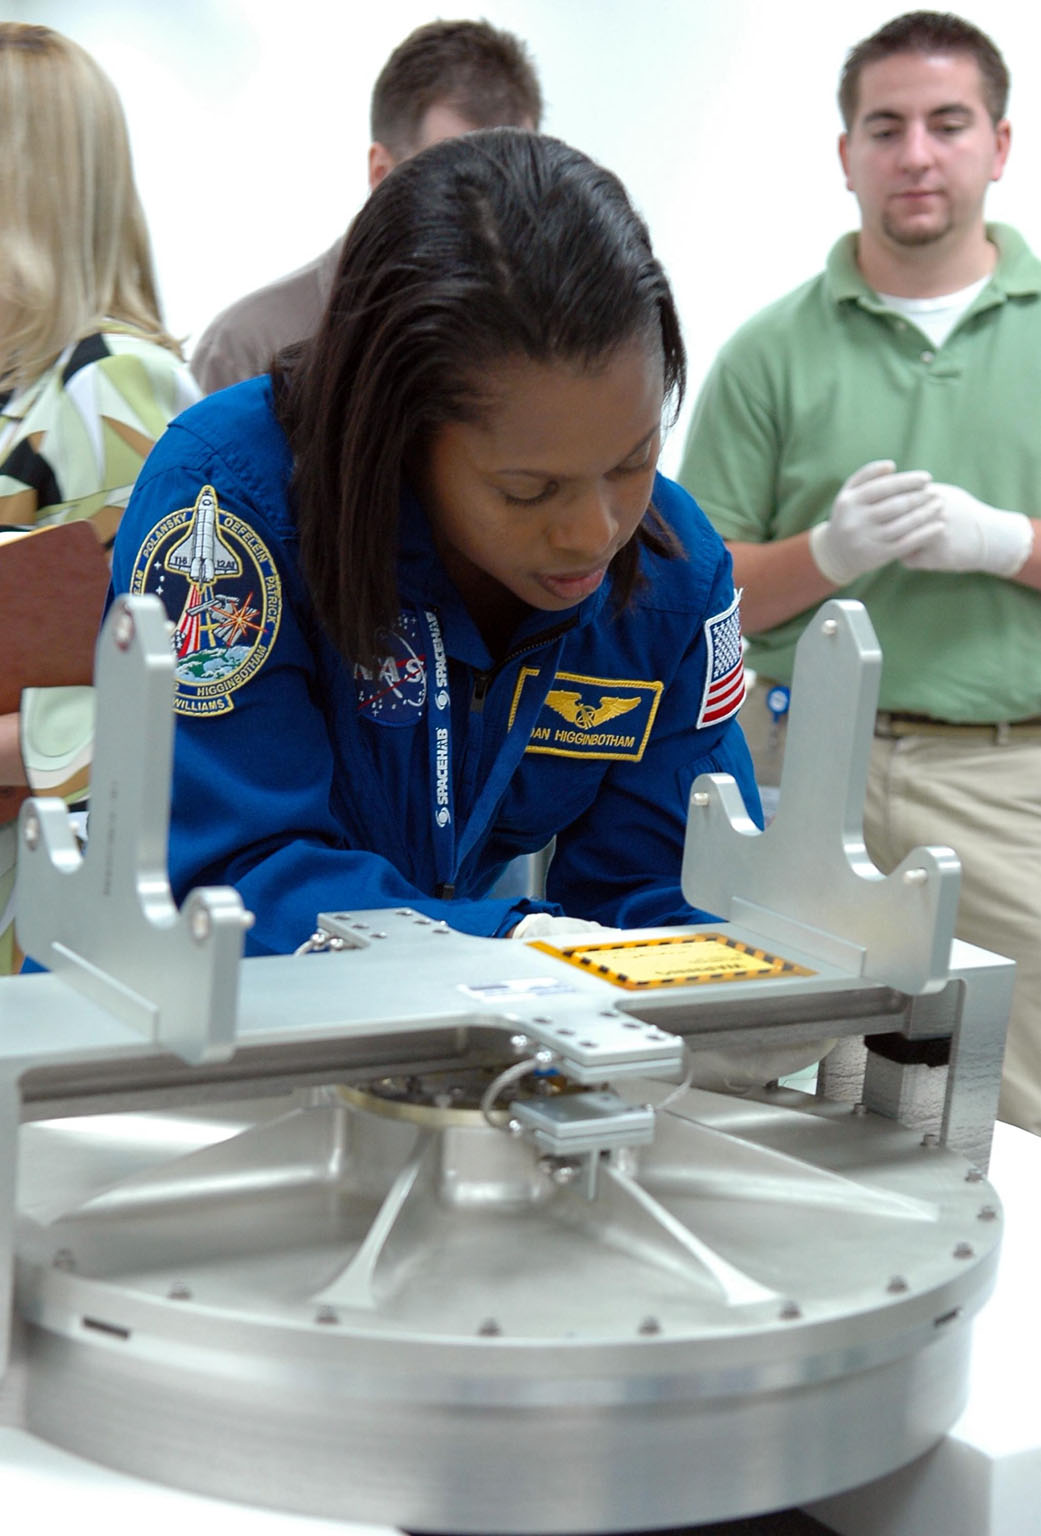 KENNEDY SPACE CENTER, FLA. - Inside the SPACEHAB Payload Processing Facility at Port Canaveral, Fla., STS-116 Mission Specialist Joan Higginbotham looks over flight hardware during the Crew Equipment Interface Test. Mission crews make frequent trips to the Space Coast to become familiar with the equipment and payloads they will be using. STS-116 will be mission No. 20 to the International Space Station and construction flight 12A.1. The mission payload is the SPACEHAB module, the P5 integrated truss structure and other key components. Launch is scheduled for no earlier than Dec. 7. Photo credit: NASA/Kim Shiflett